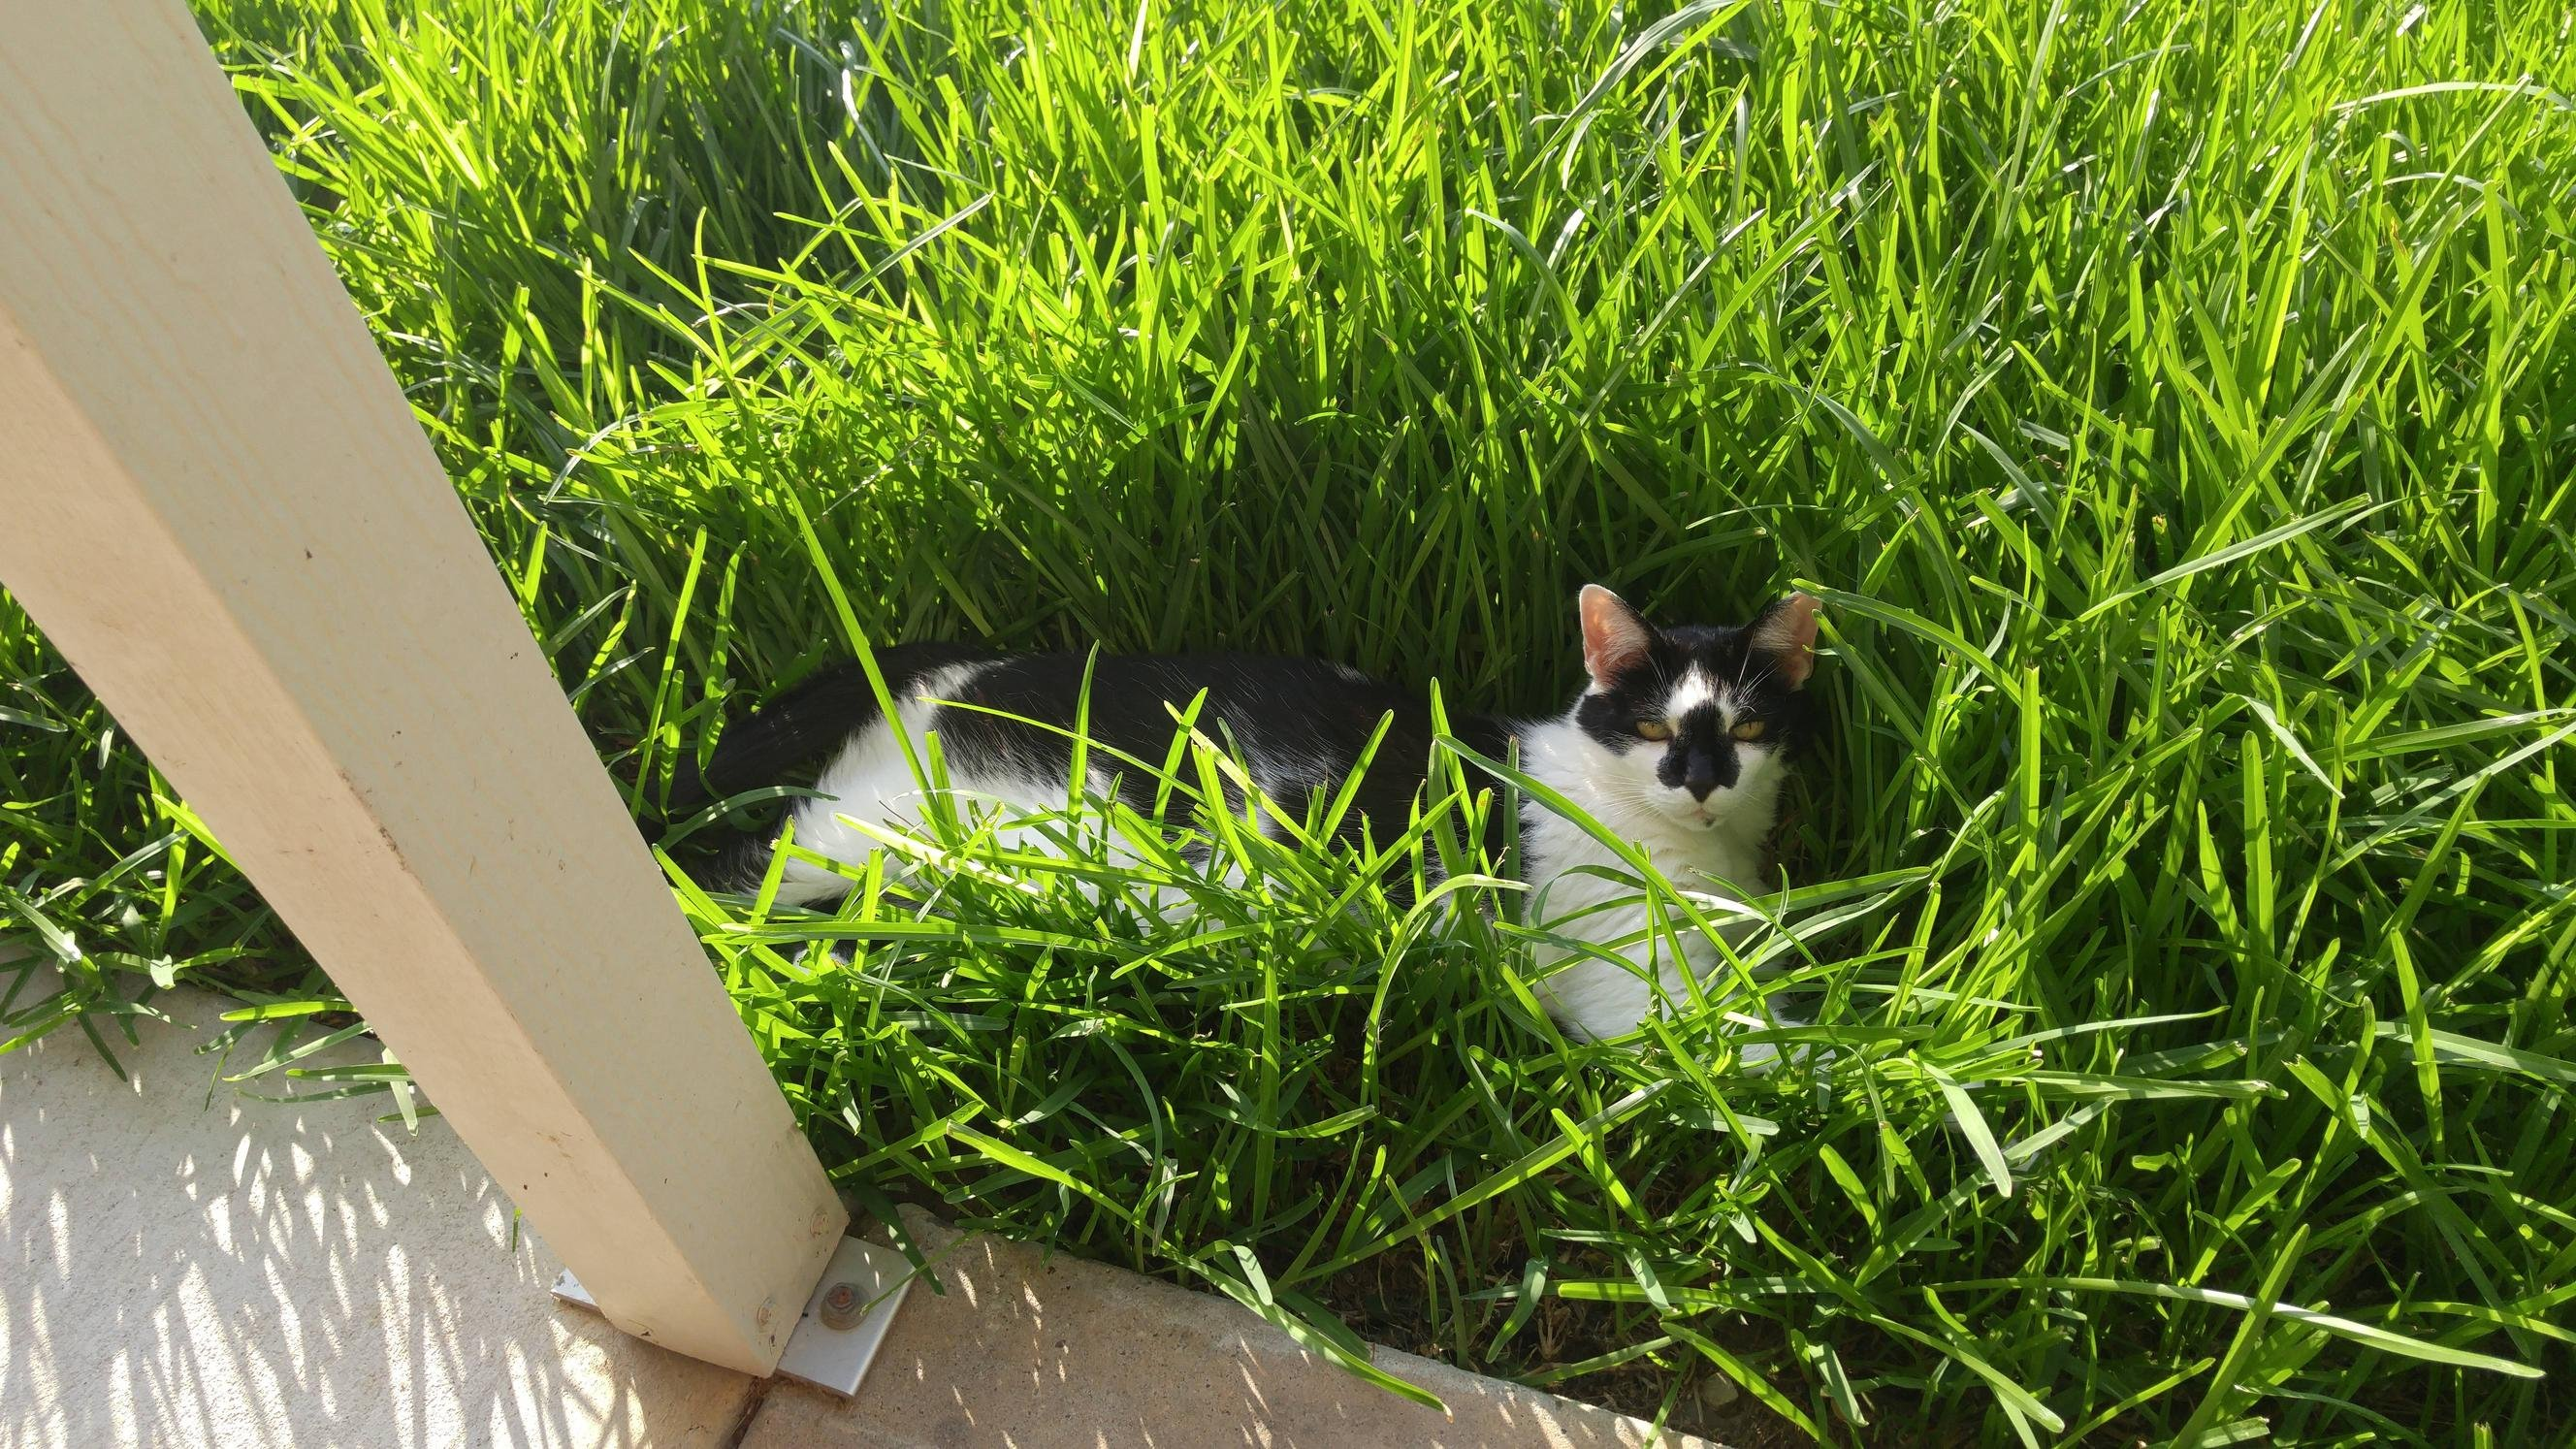 If the grass fits, I sits.